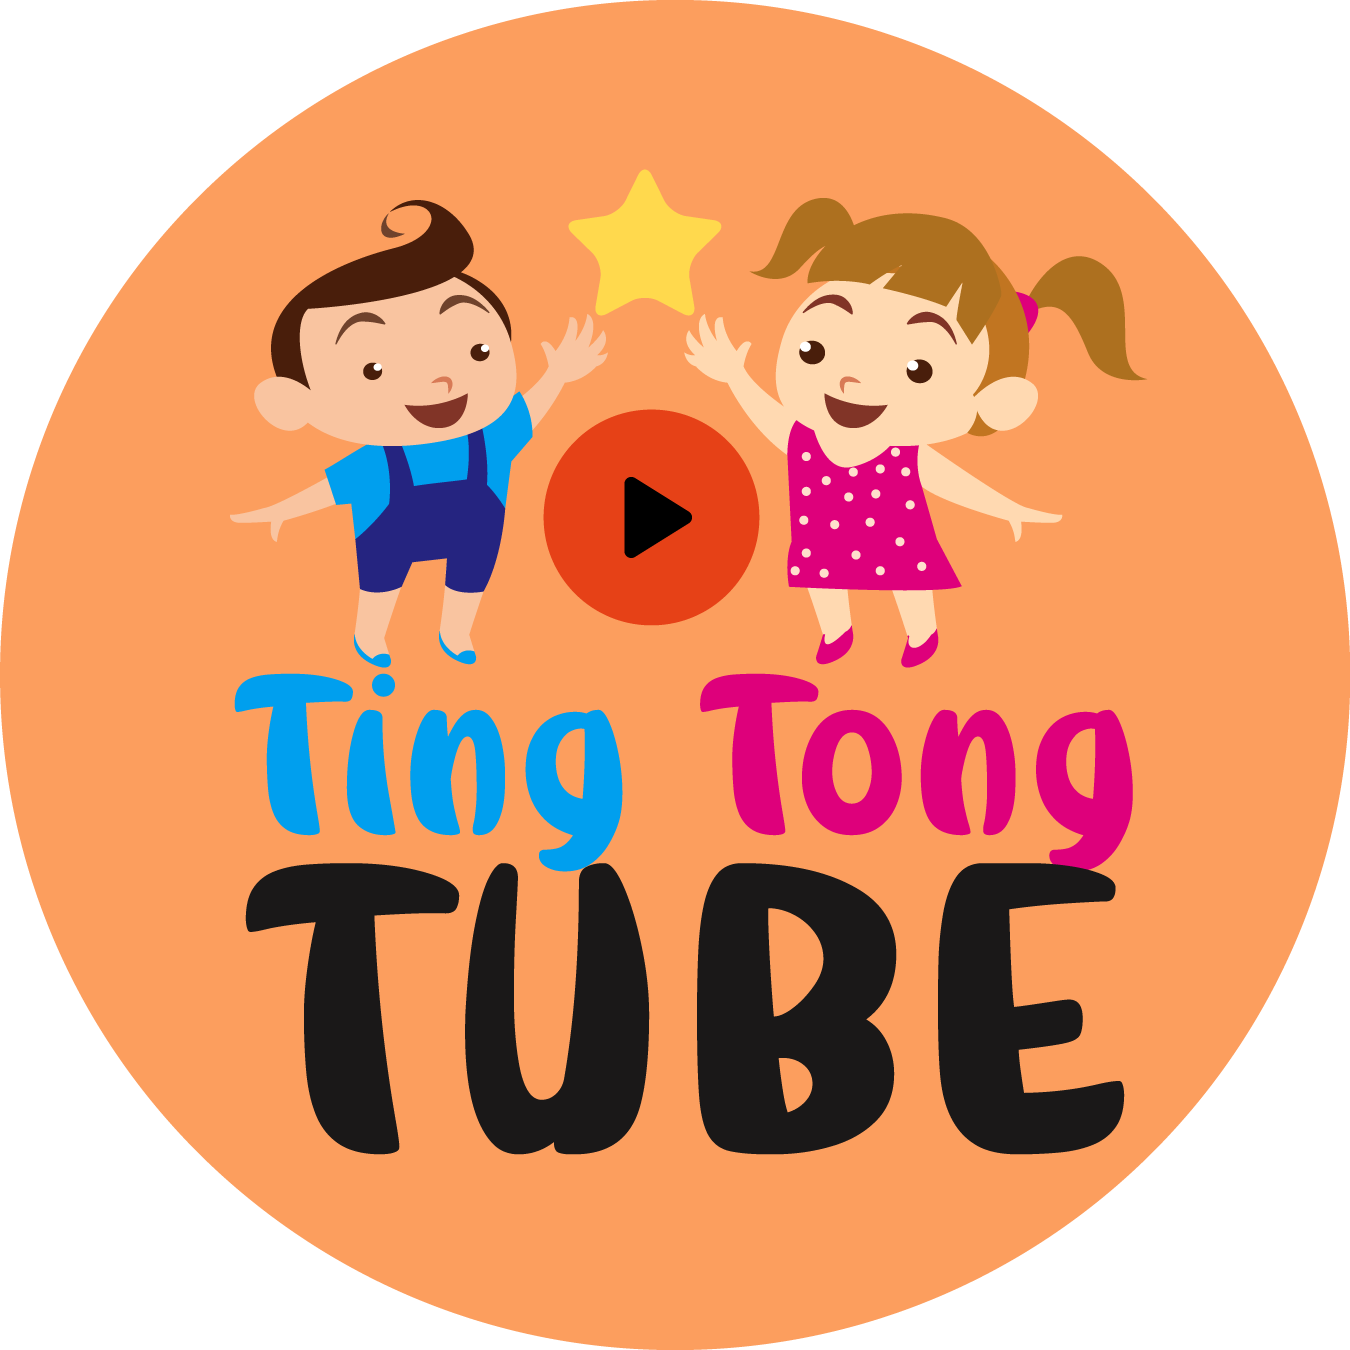 Tingtongtube